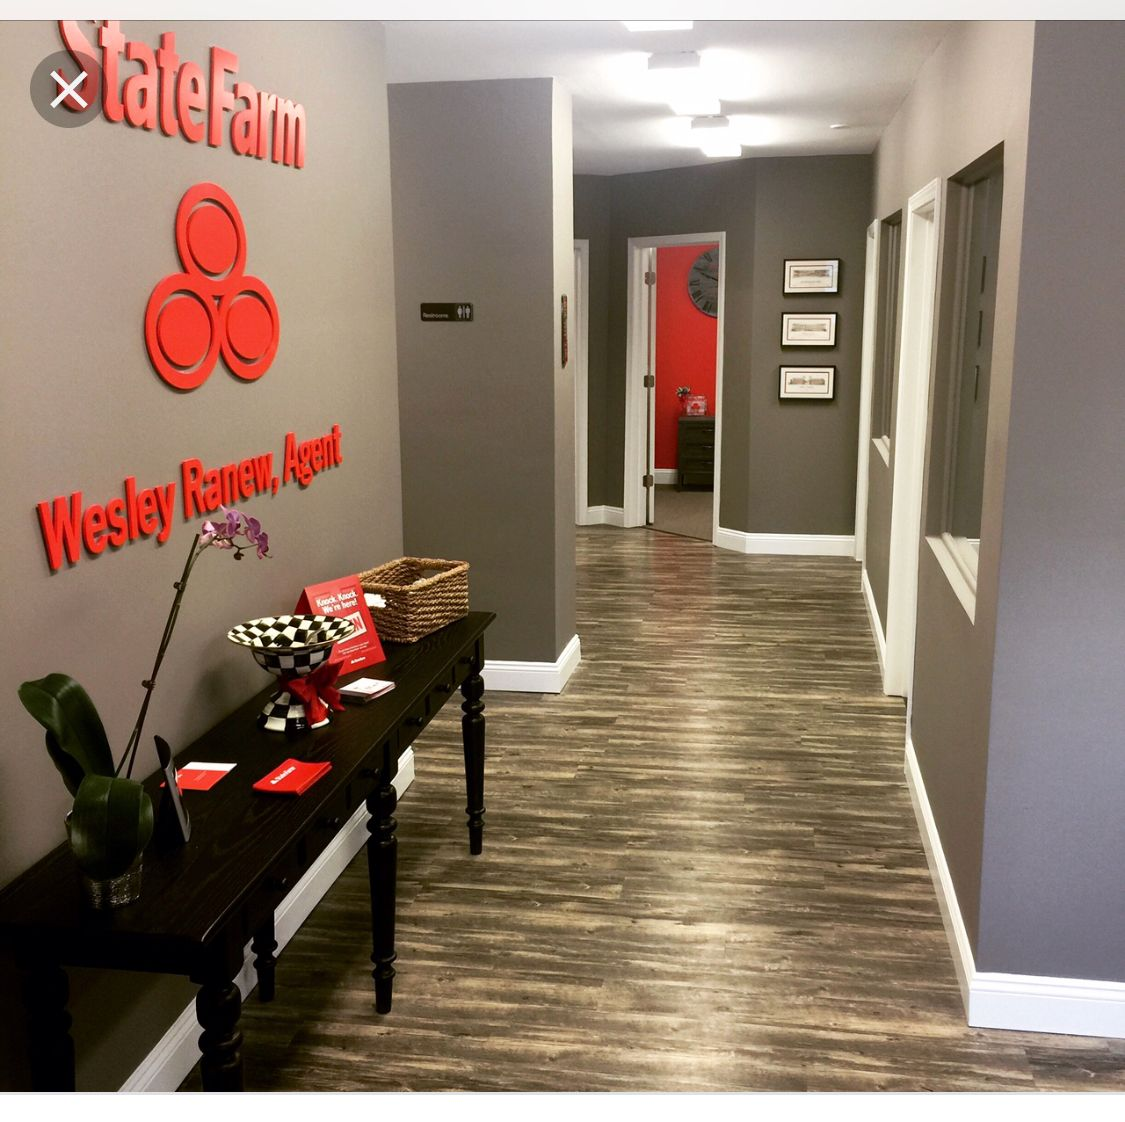 State farm office by Deanna Newsom on Office remodel ideas